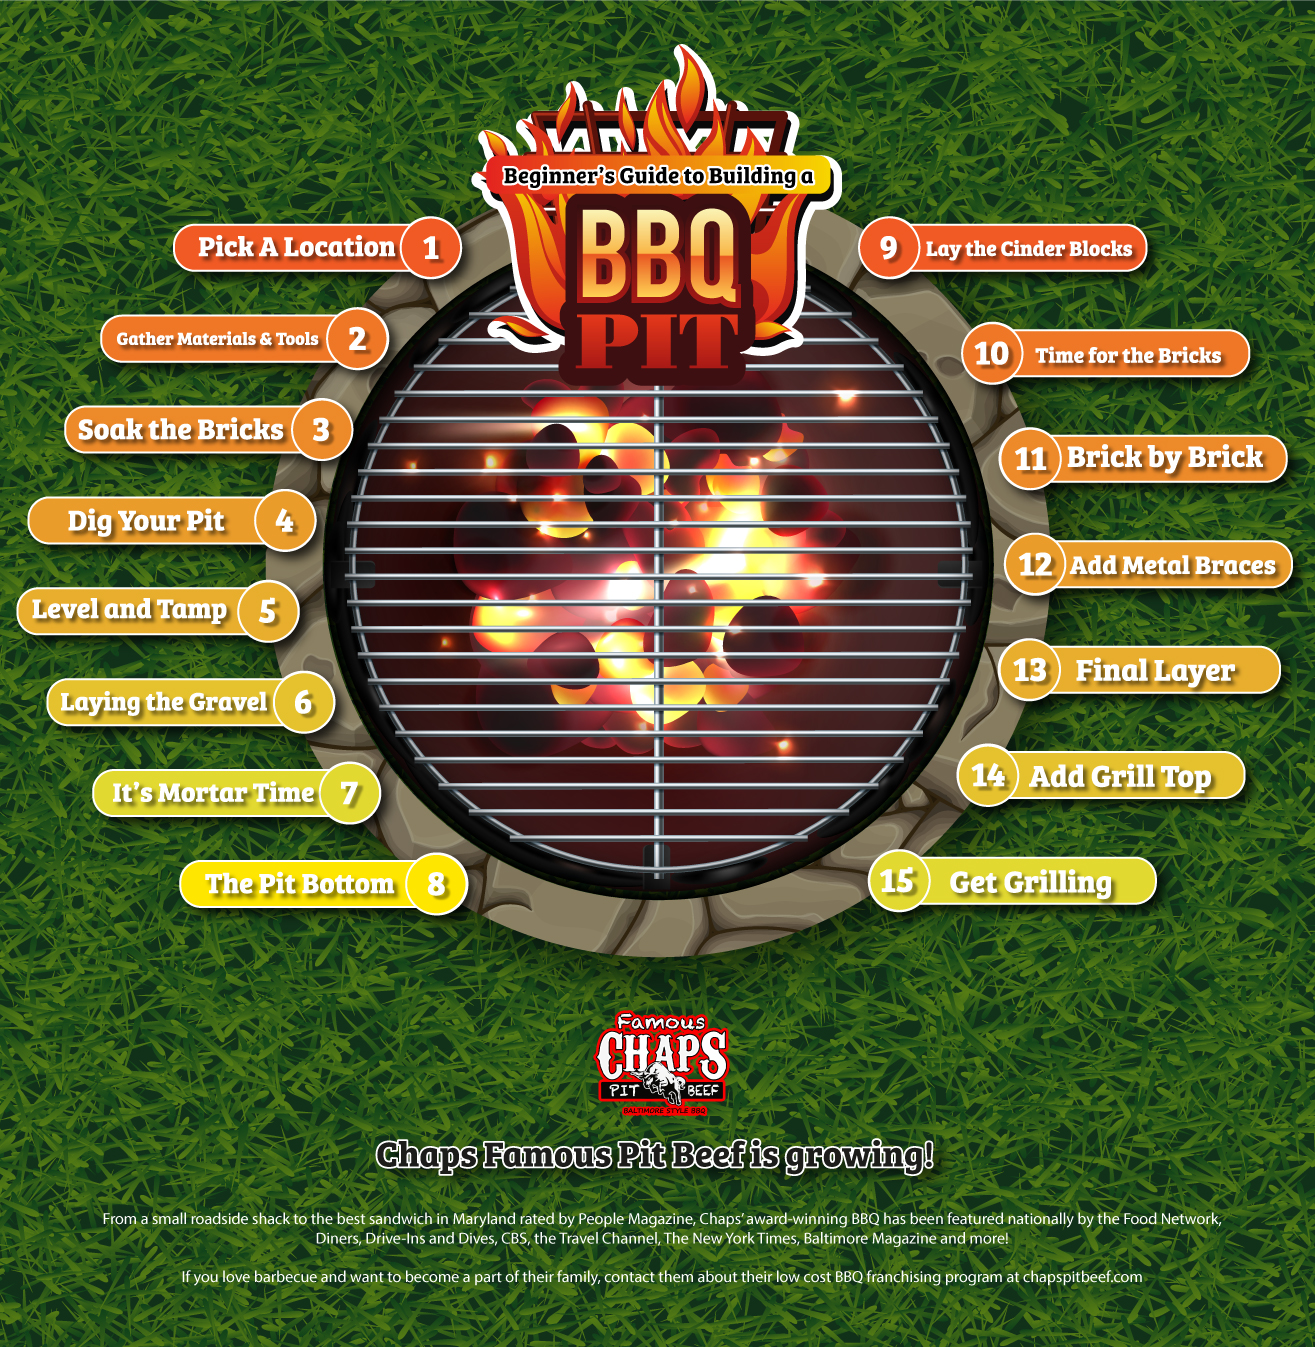 Guide to Building a BBQ Pit